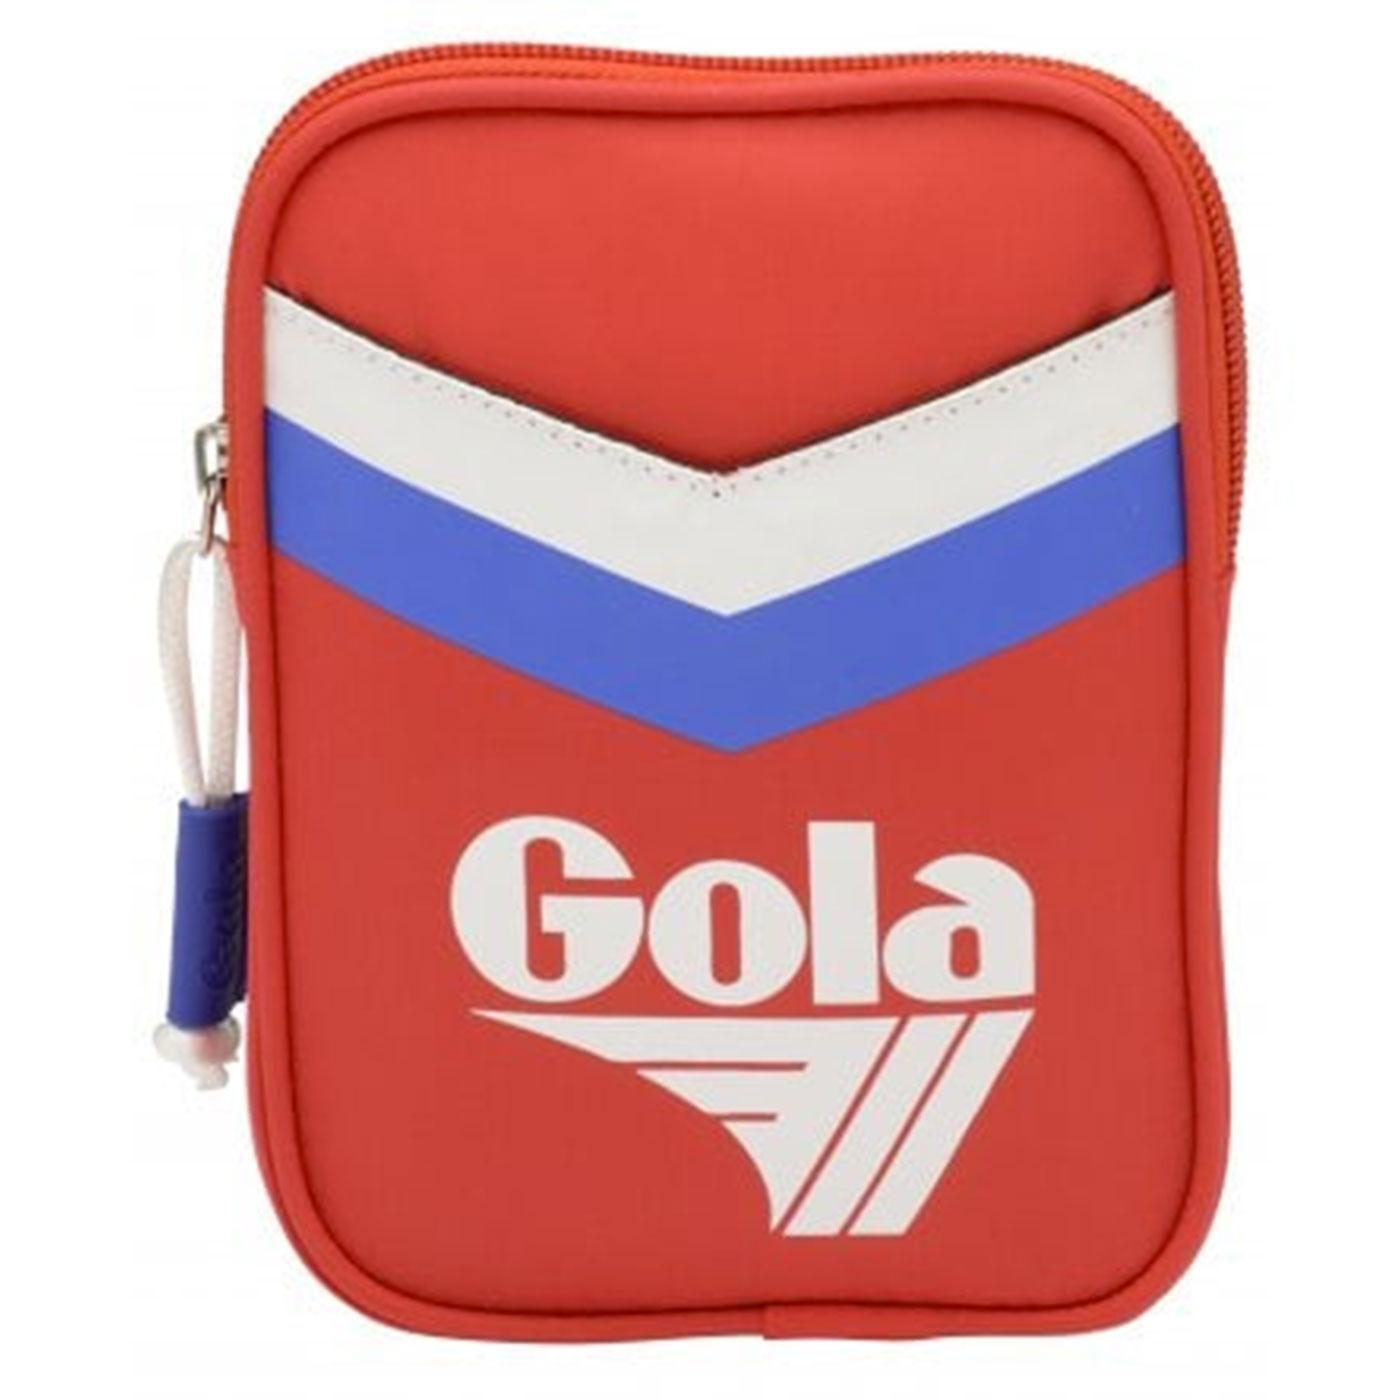 Goodman Chevron GOLA Retro Micro Pocket Bag (R/B)